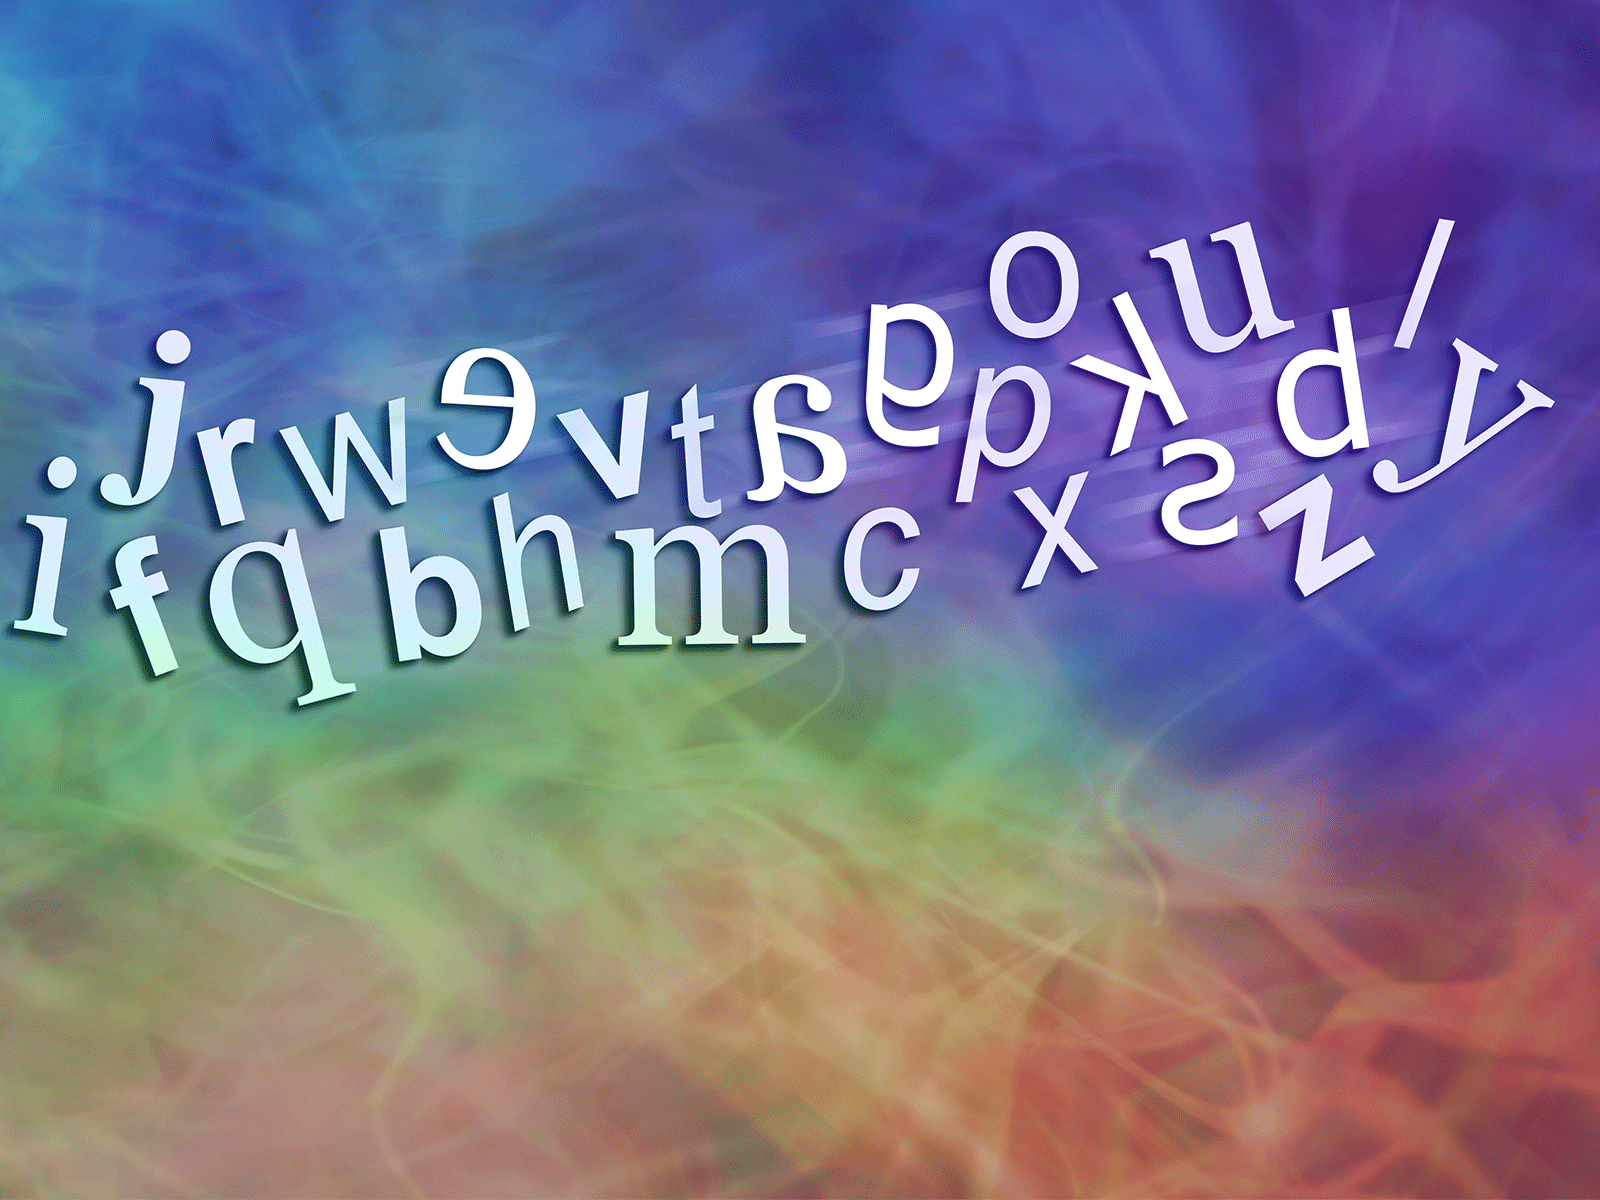 chaotic letters